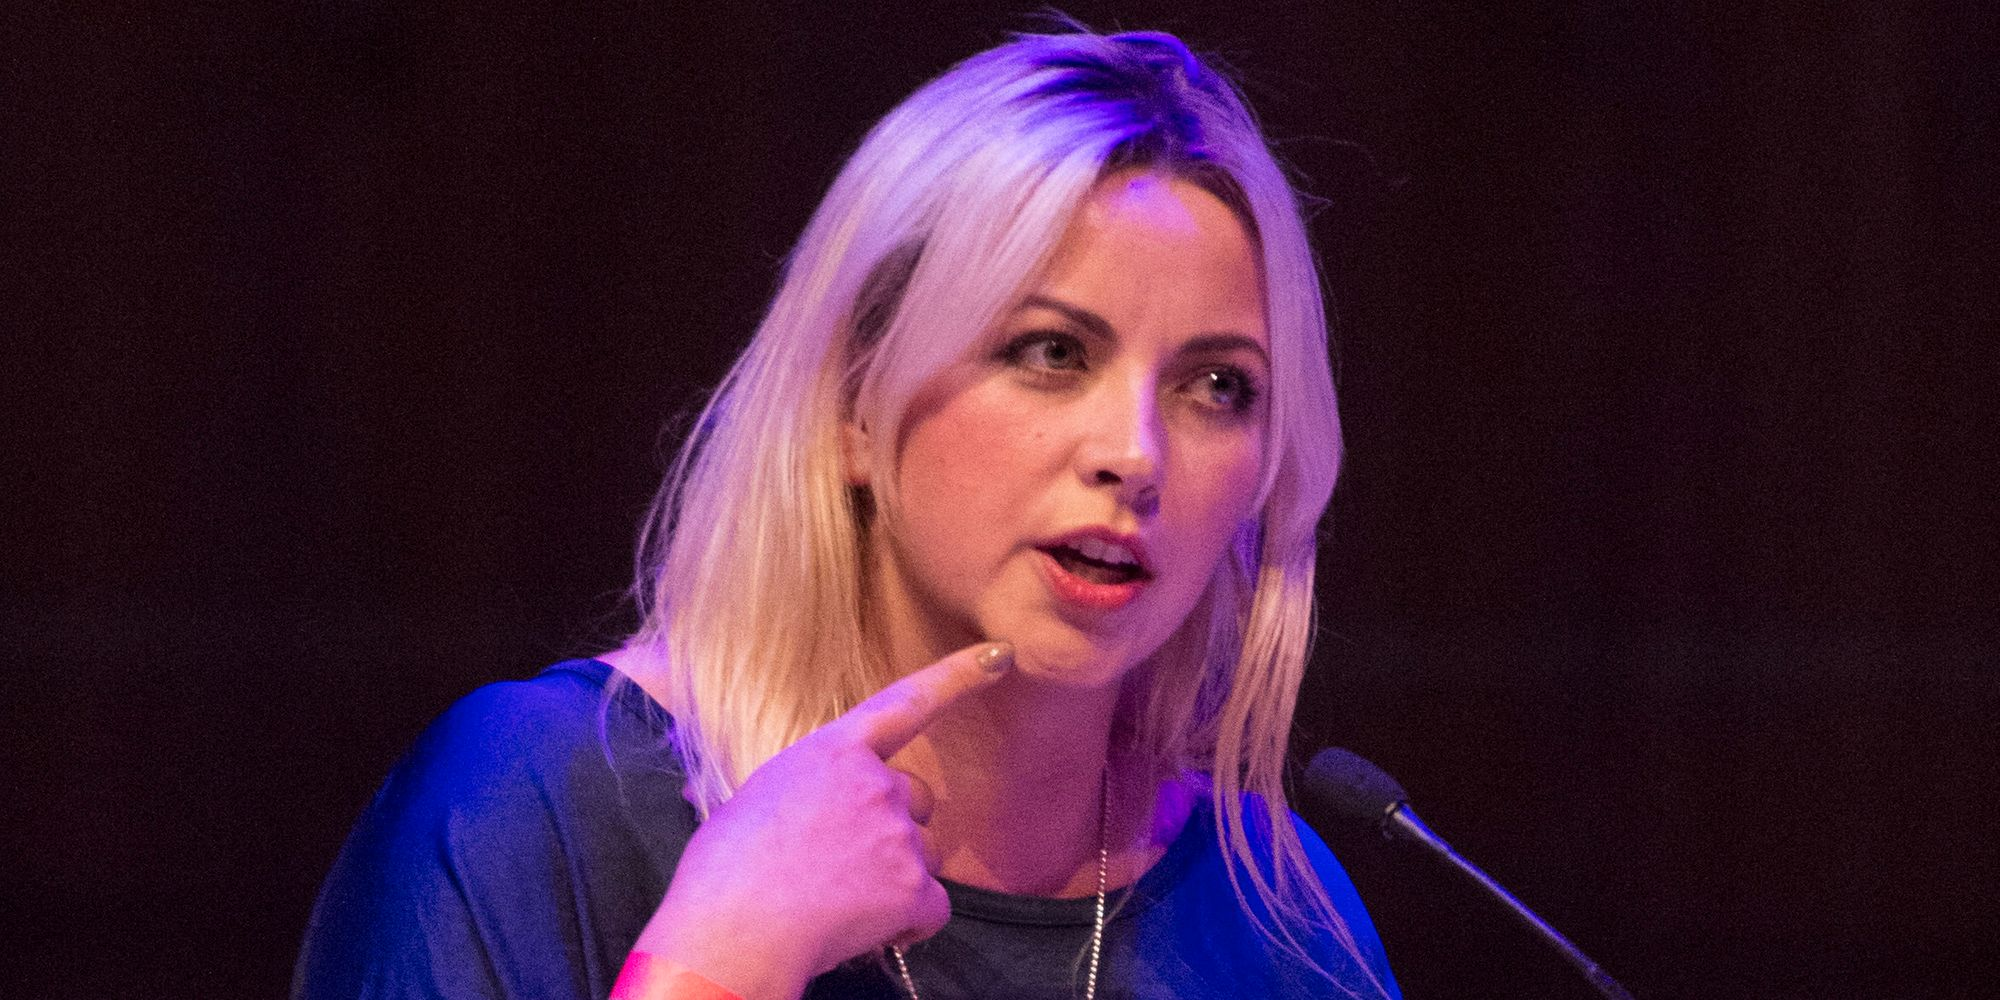 Charlotte Church 'Shocked' At 'Horrifying' Abuse After Nigel Farage Tweet